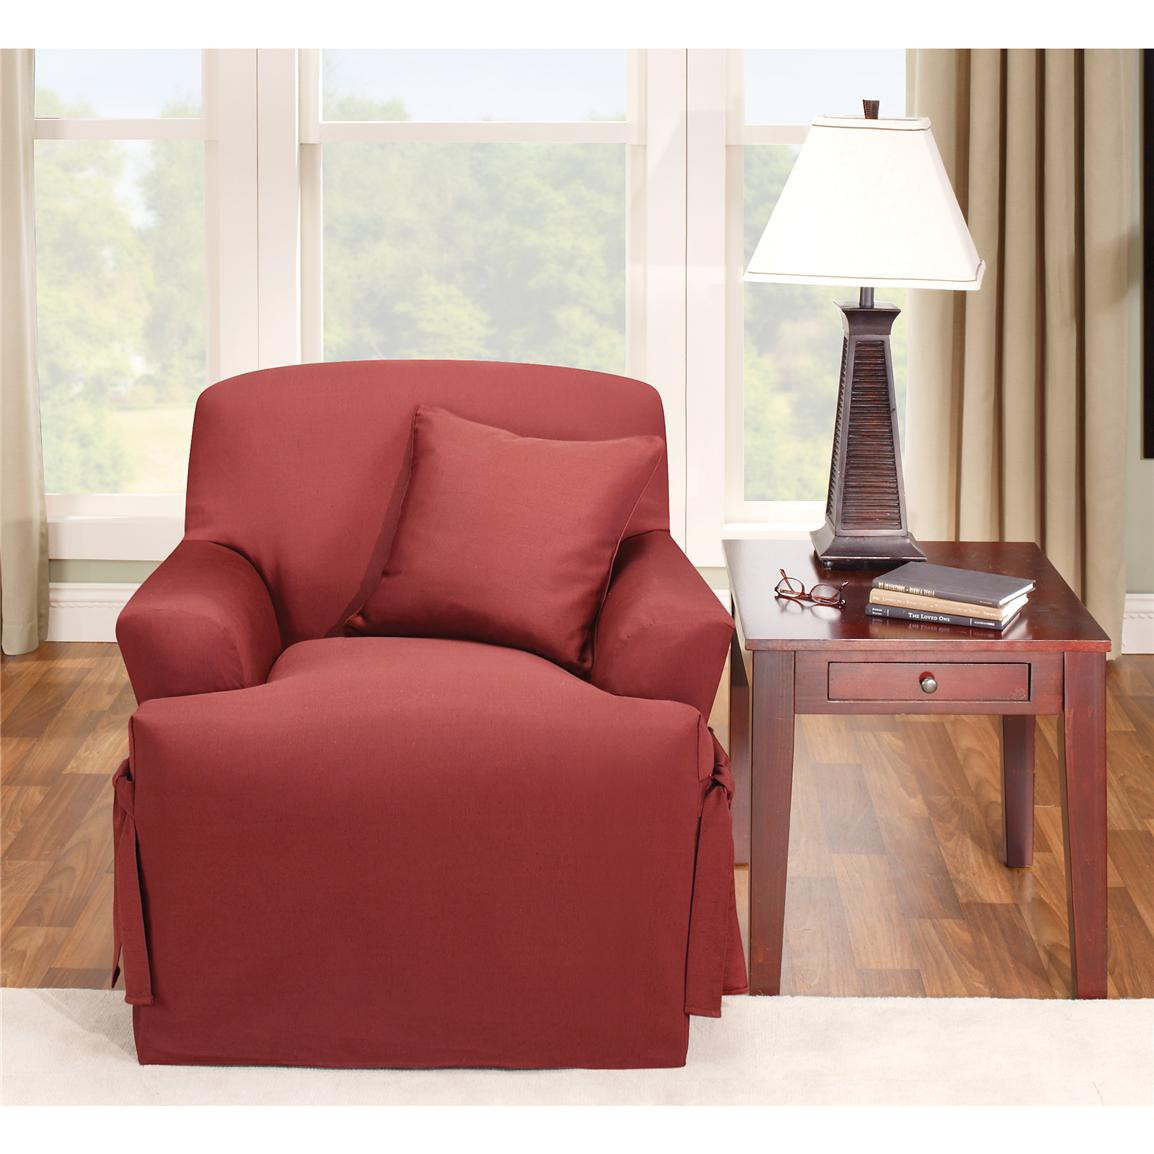 Best ideas about Surefit Chair Cover . Save or Pin Sure Fit Logan T cushion Chair Slipcover Now.